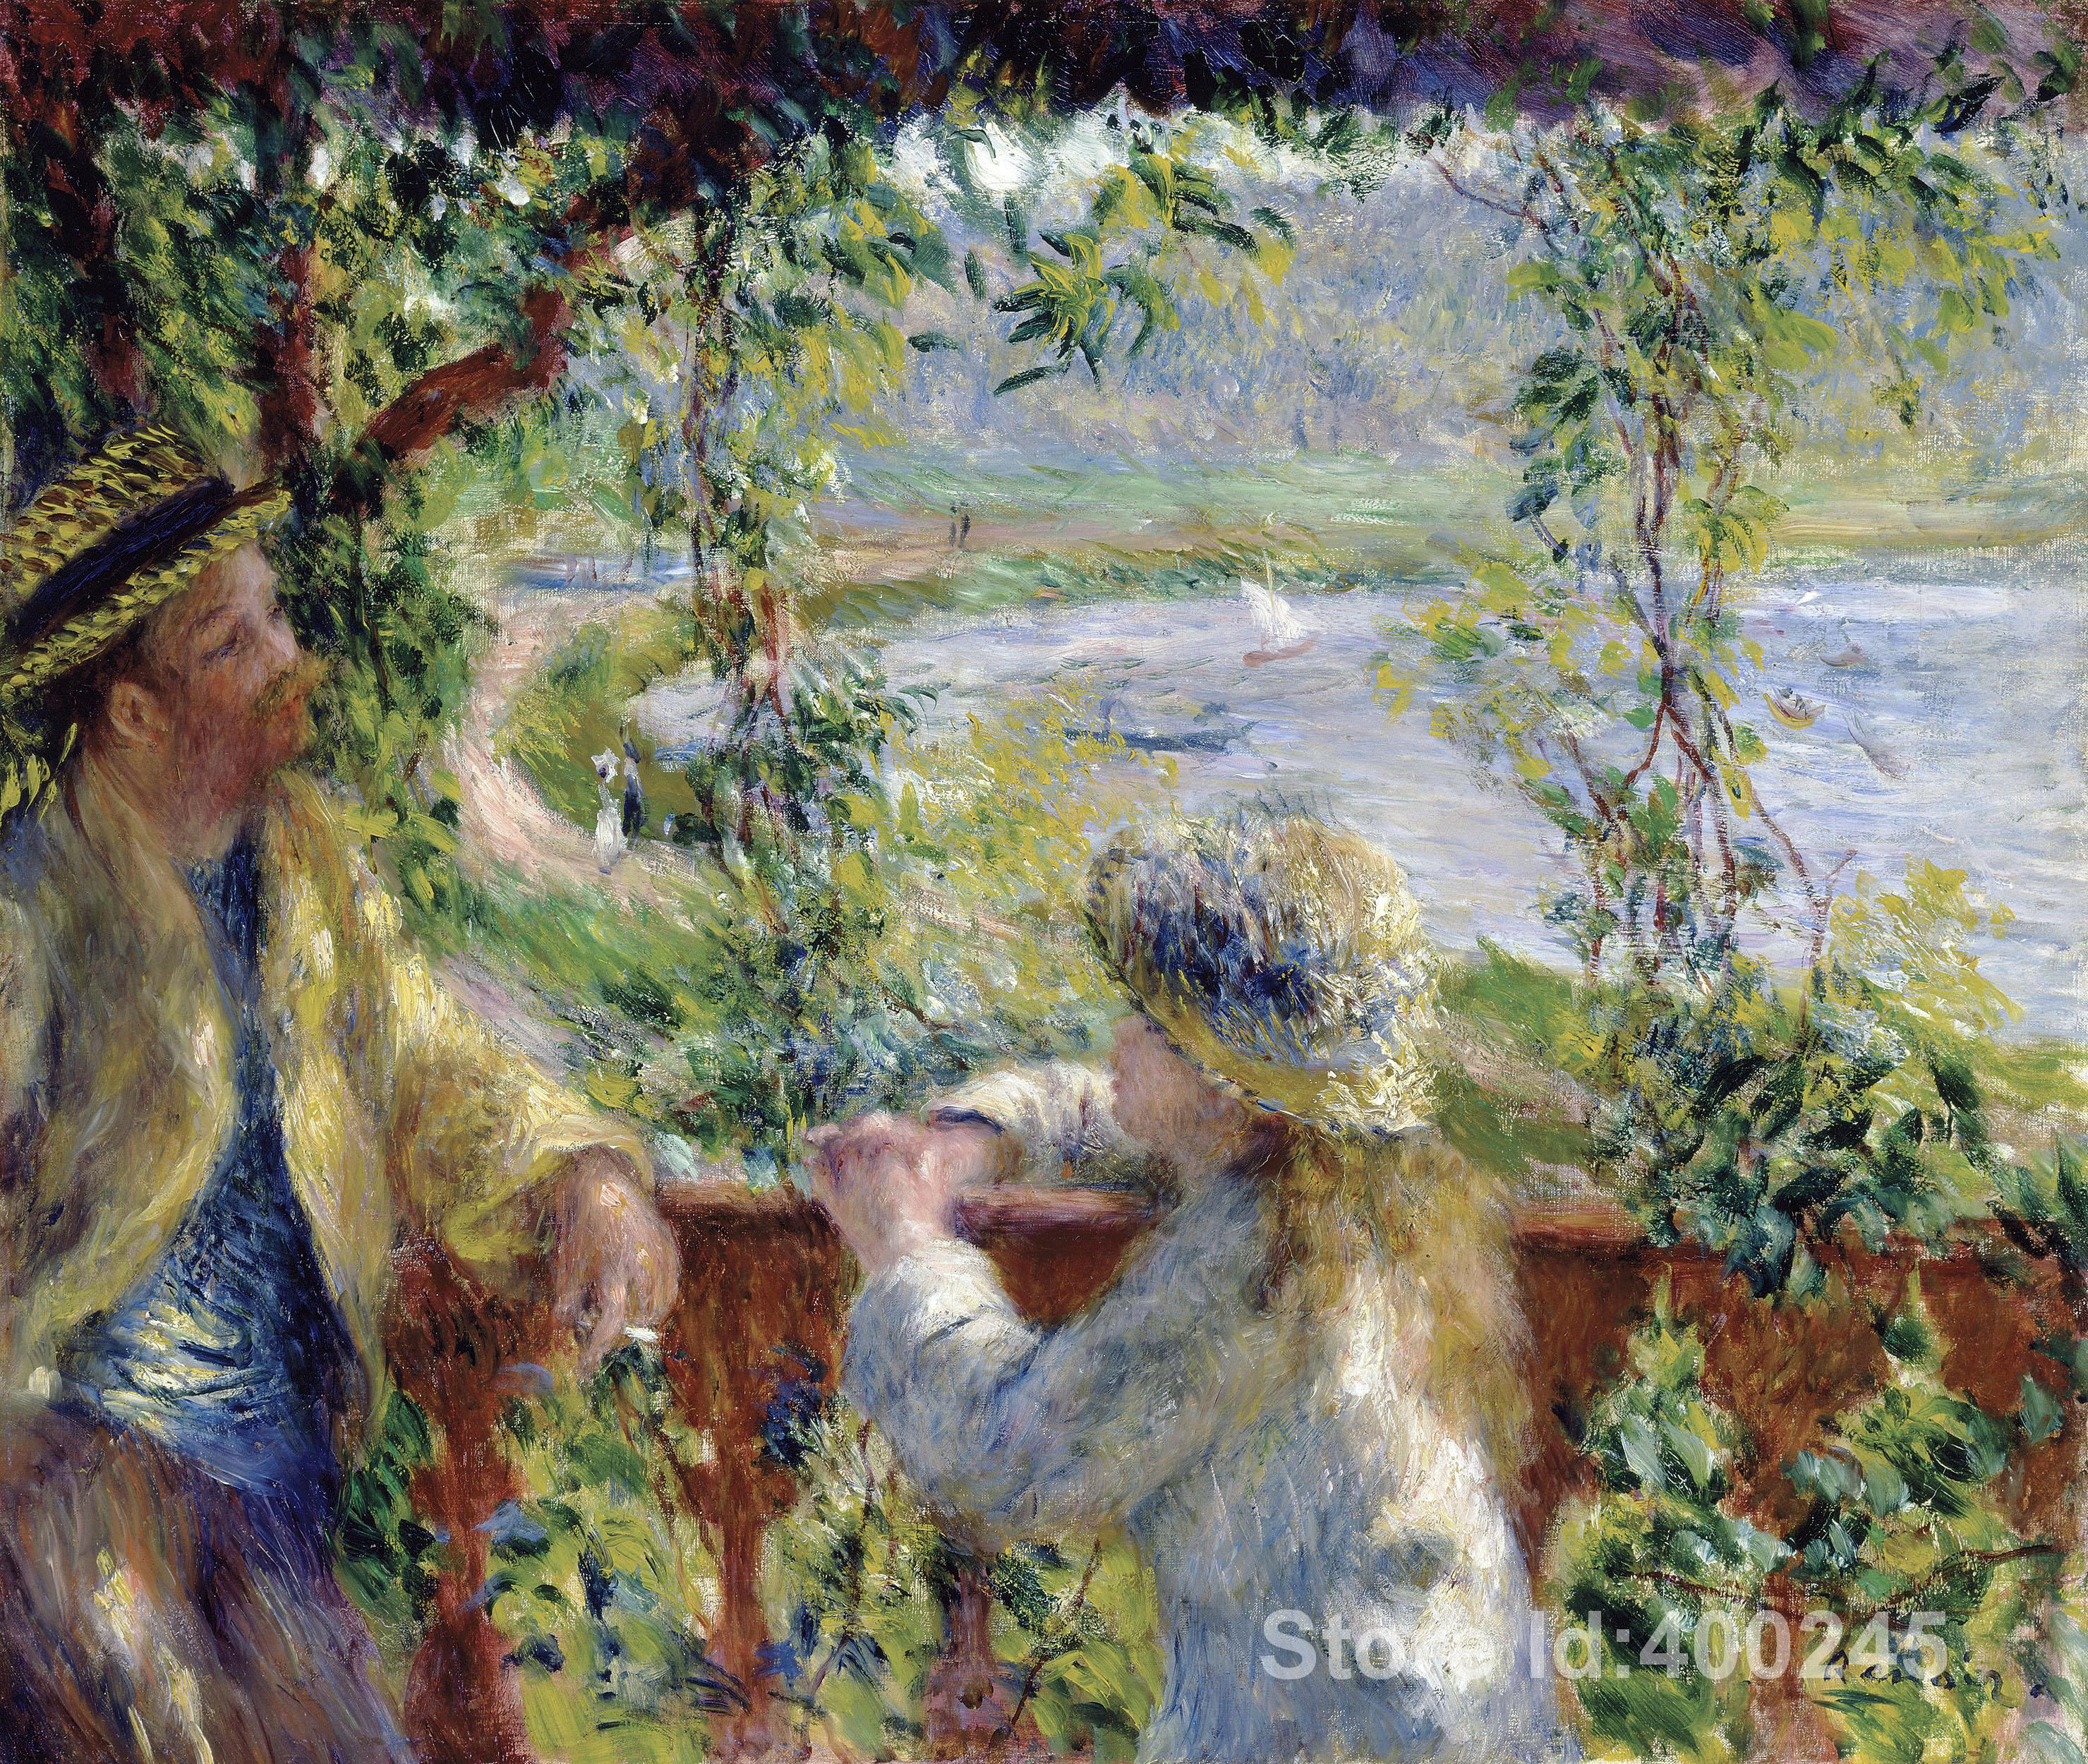 Pierre Auguste Renoir paintings of By the Water (Near the Lake) modern art beautiful High quality Hand painted